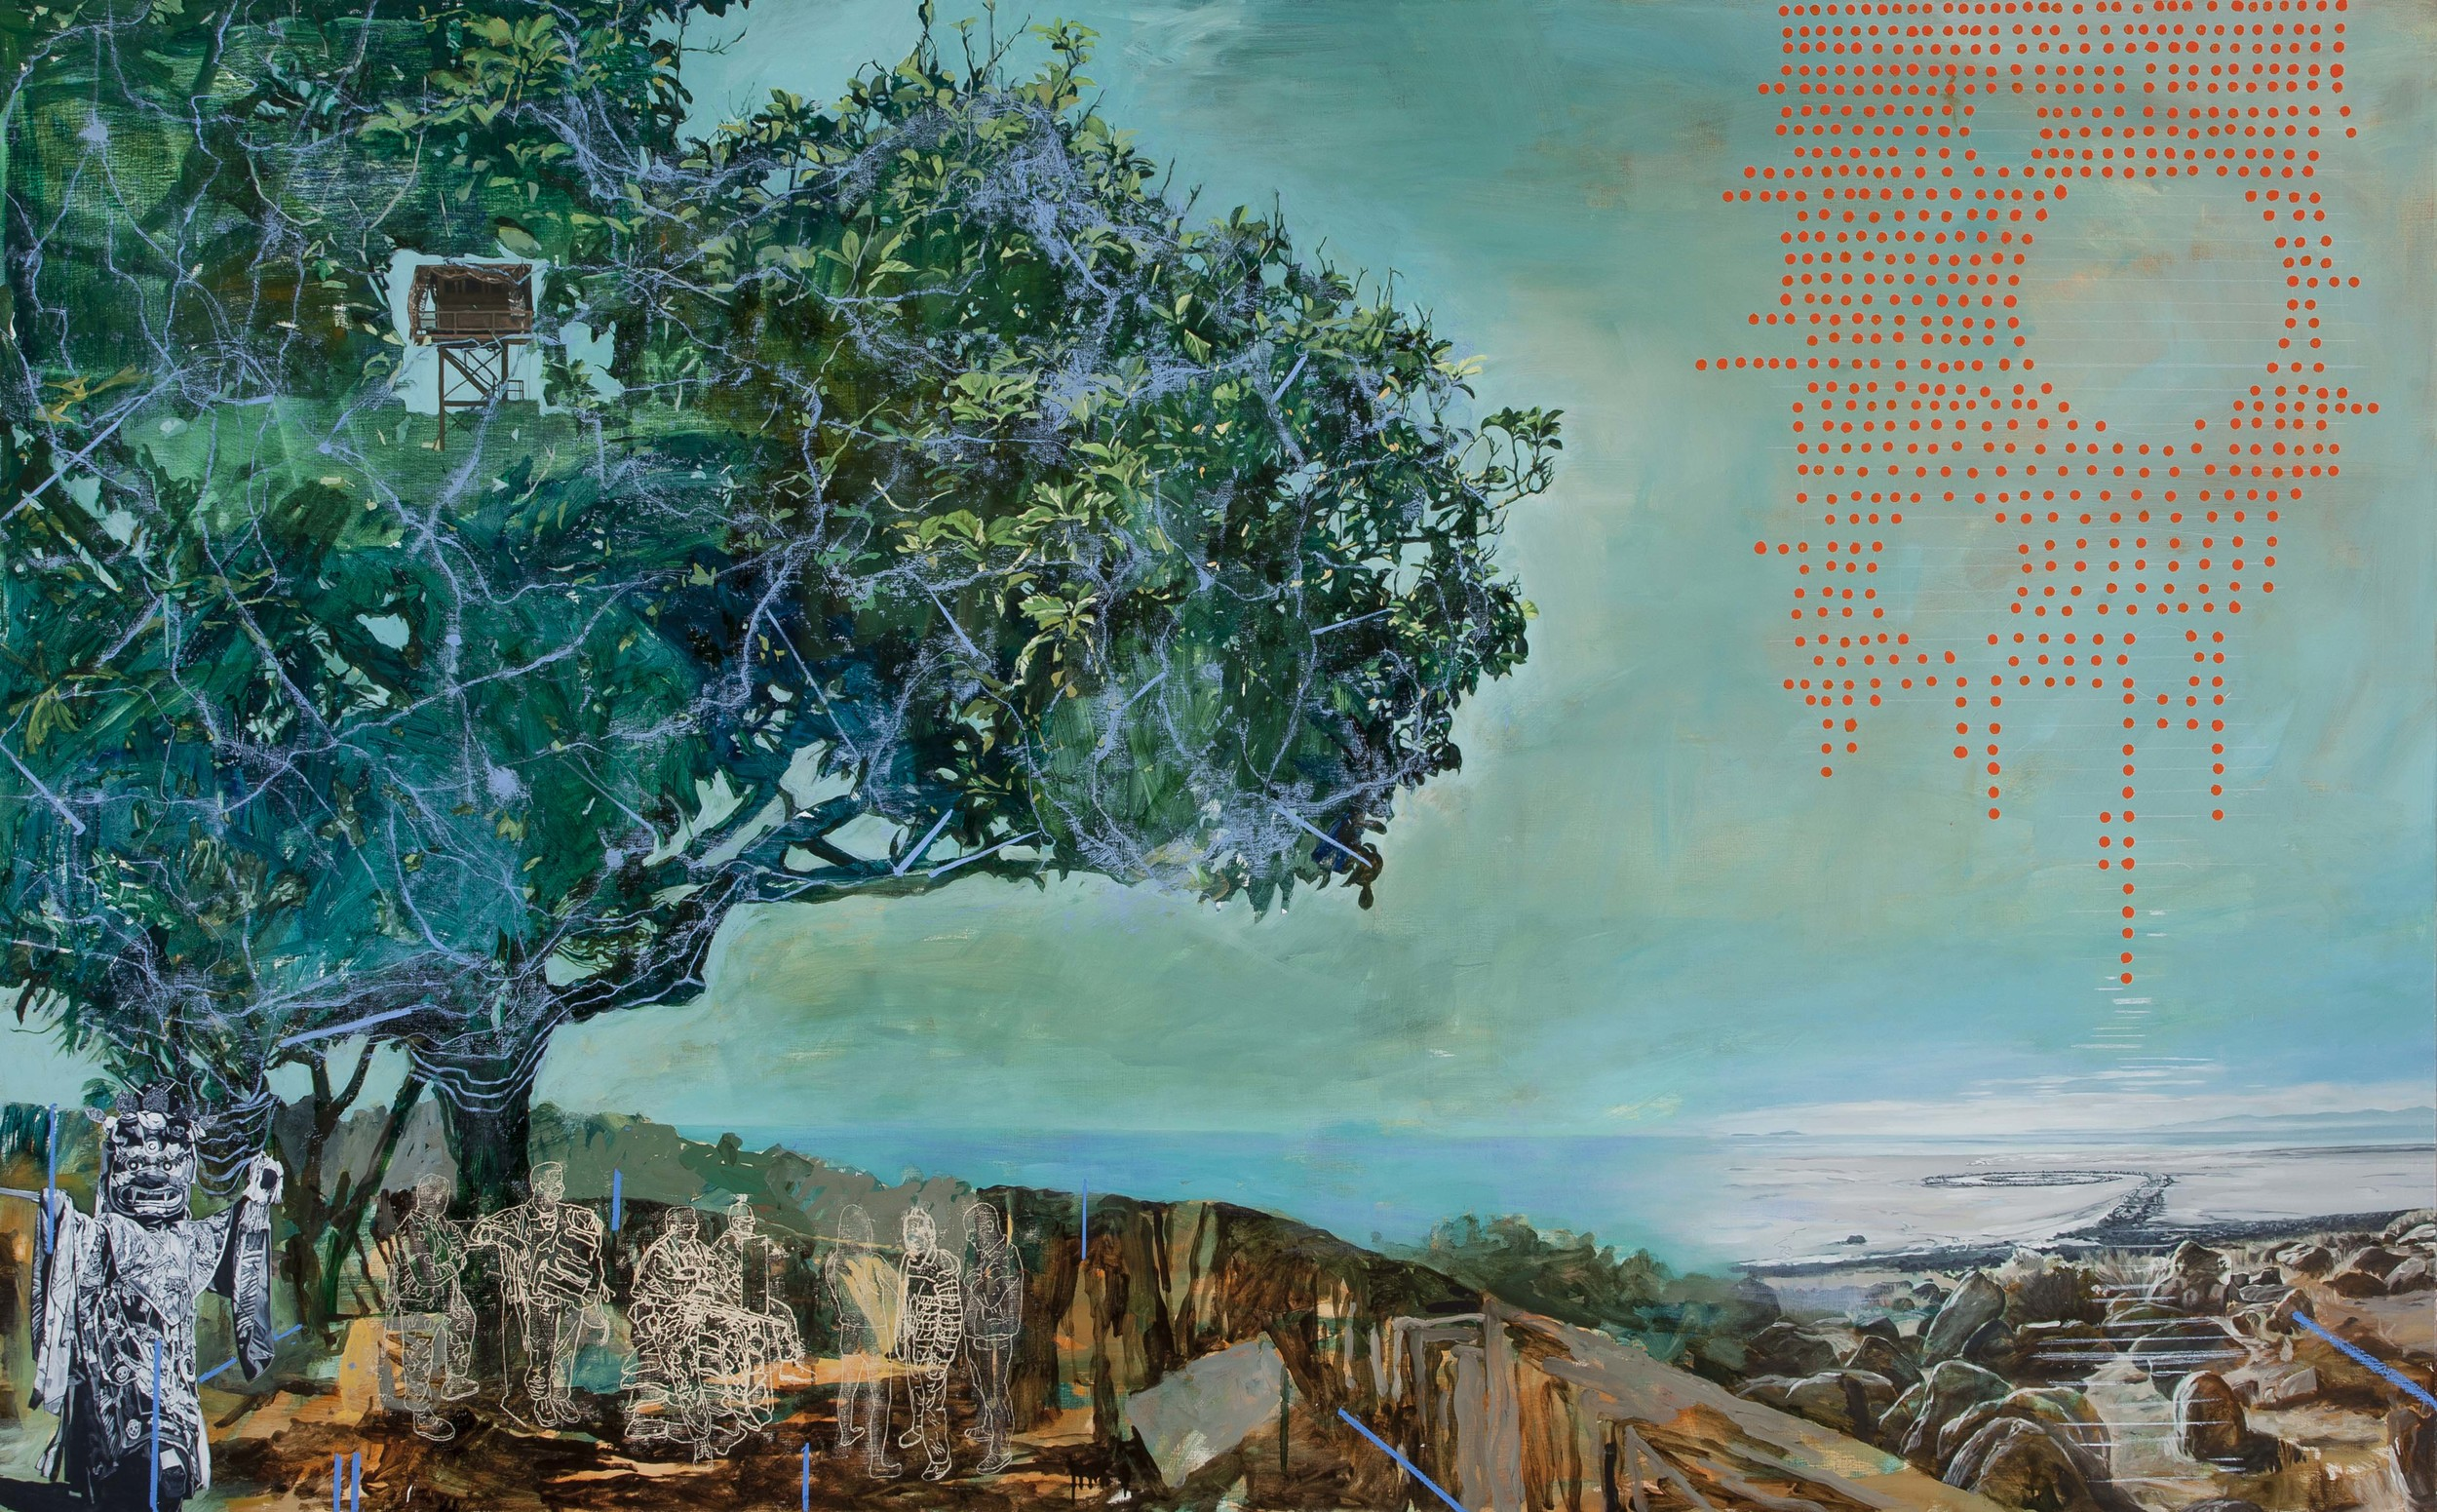 LYNDELL BROWNCHARLES GREEN   Balibo (The Fort)  2014 Oil and acrylic on linen 152.5 x 243.5 cm